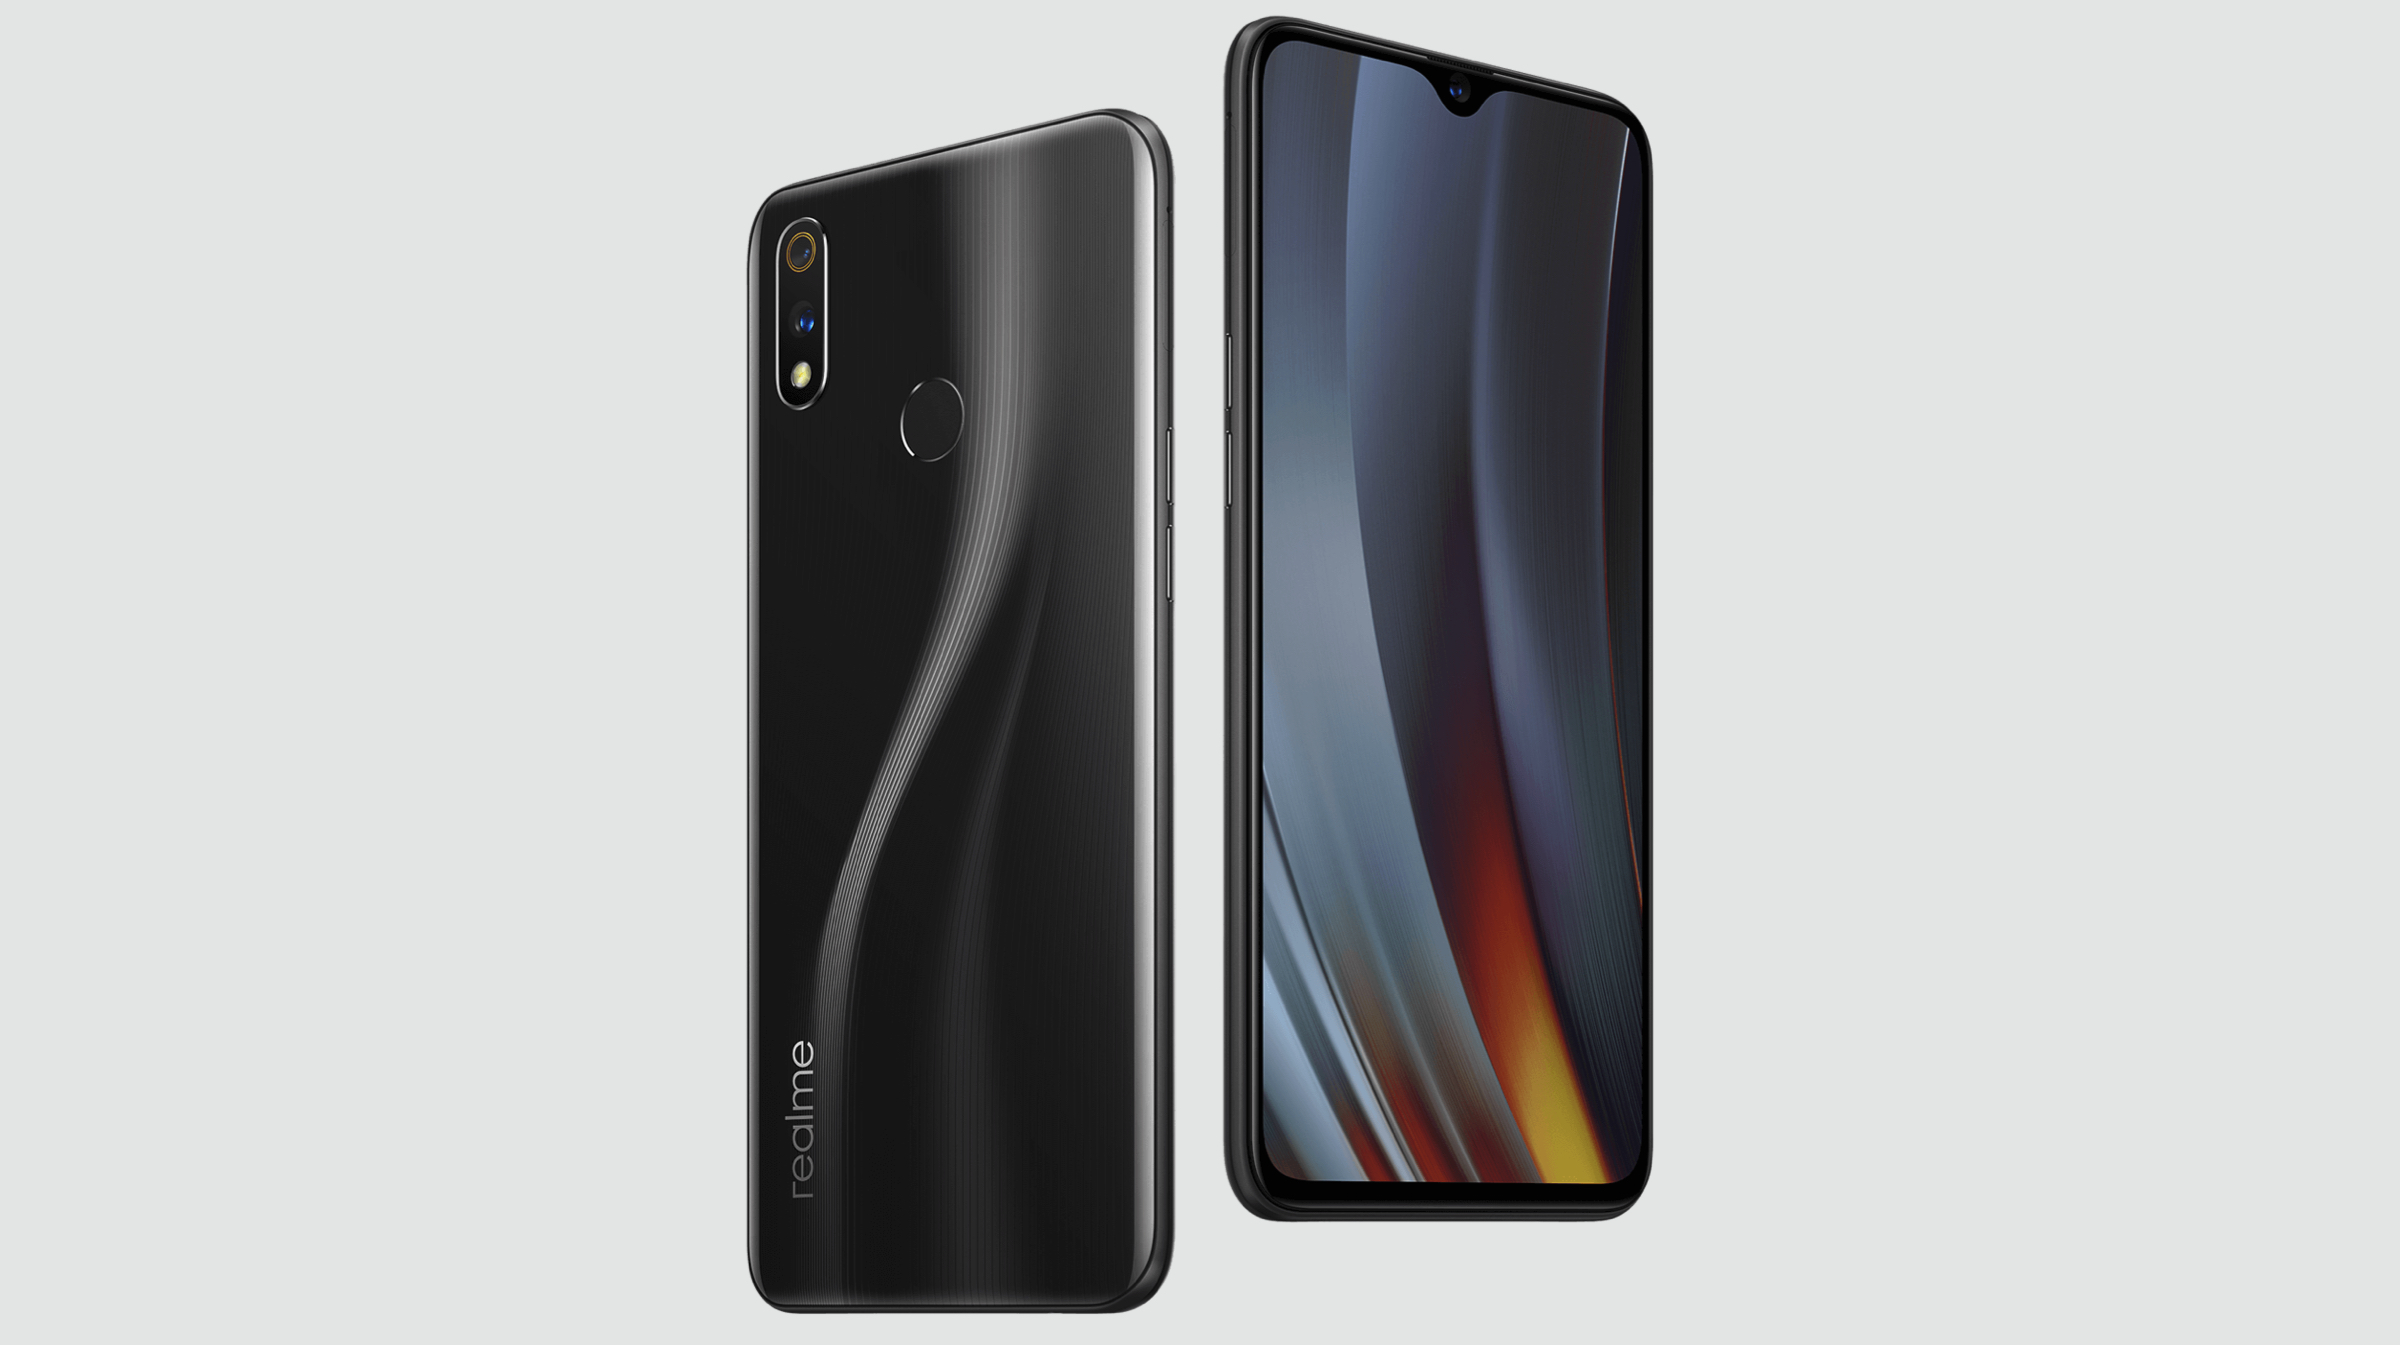 ColorOS of Realme reminds of